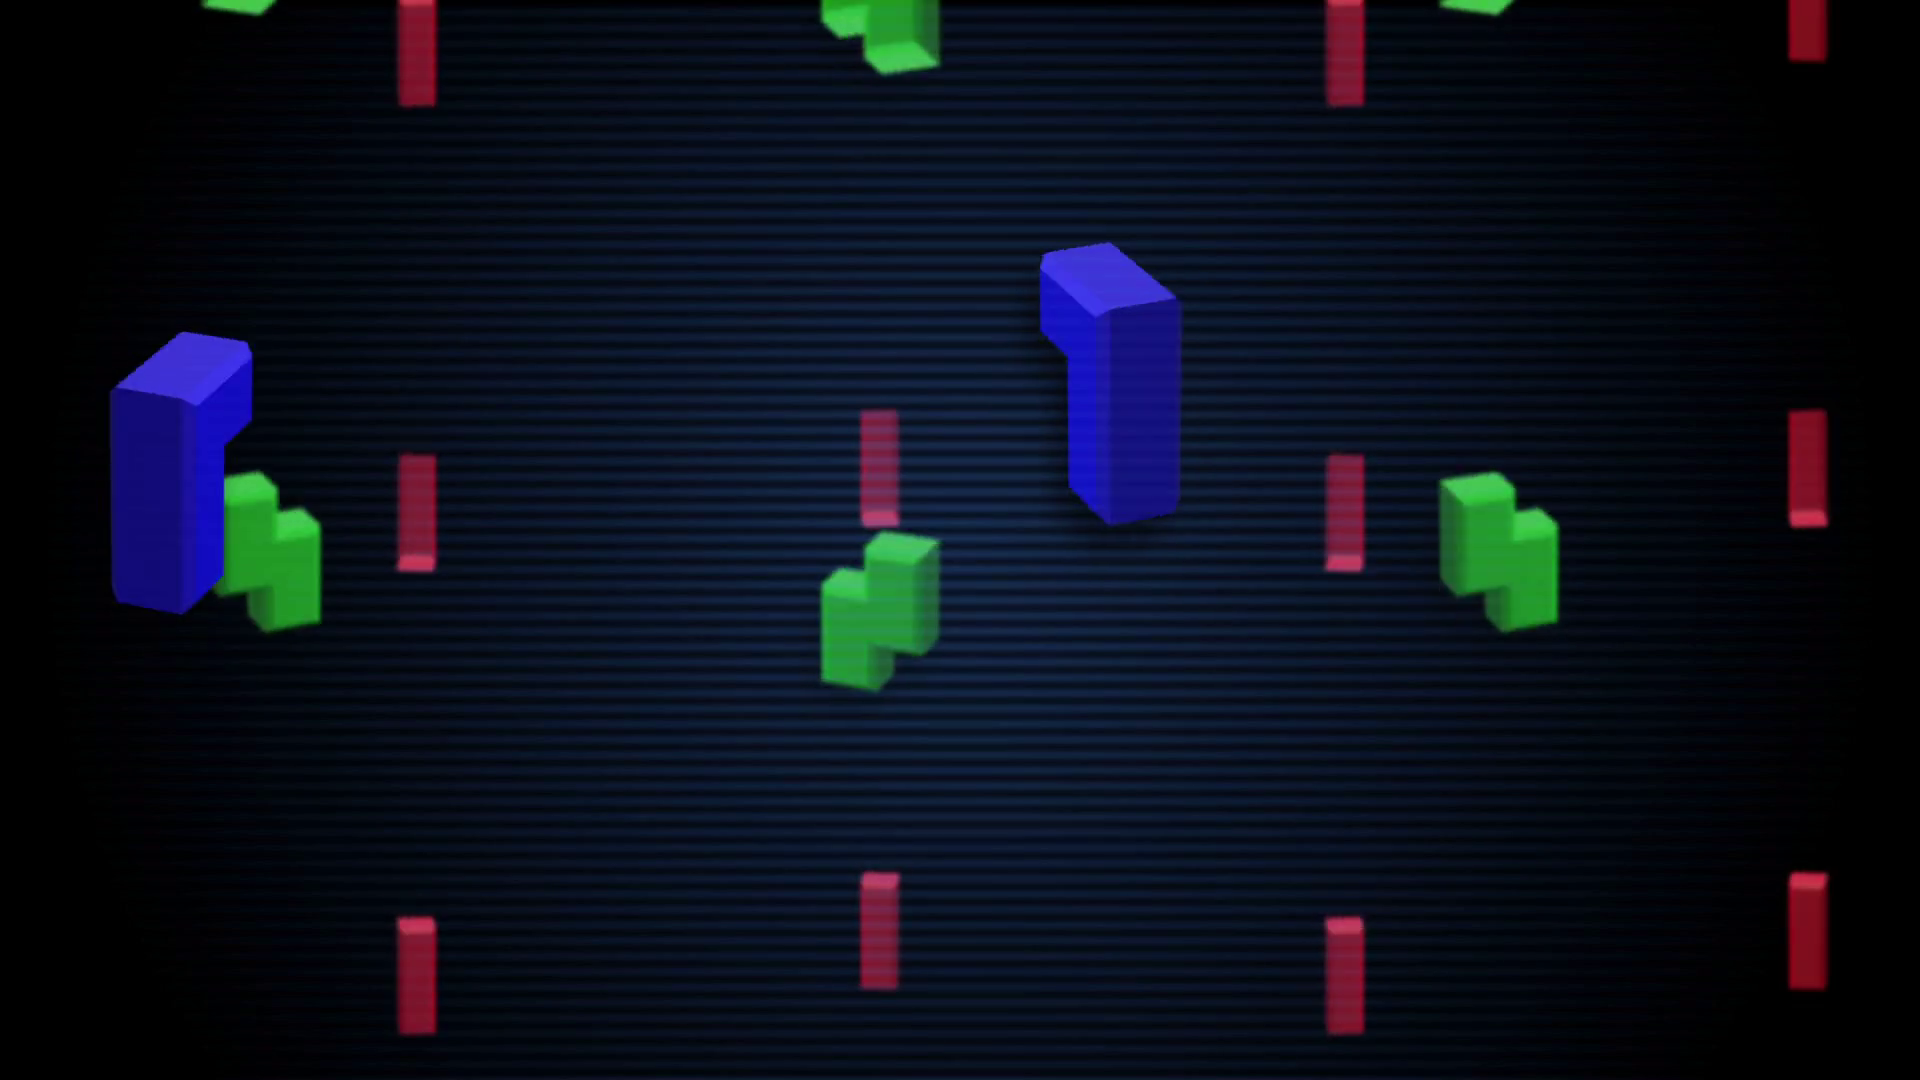 Seamless animated background of pieces inspired in Tetris arcade 1920x1080